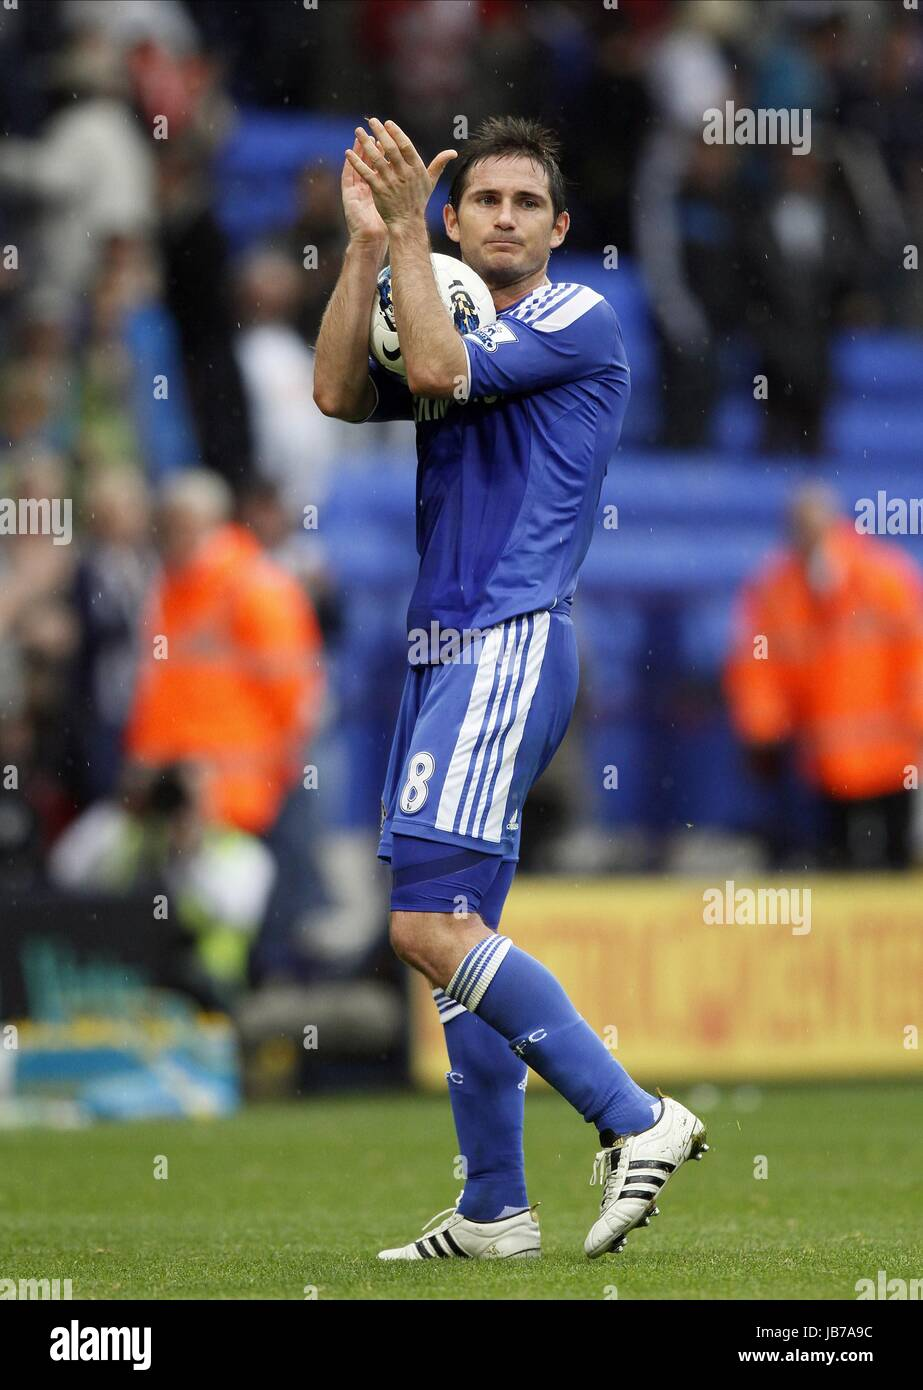 FRANK LAMPARD ACKNOWLEDGES THE BOLTON WANDERERS V CHELSEA FC REEBOK STADIUM BOLTON ENGLAND 02 October 2011 - Stock Image